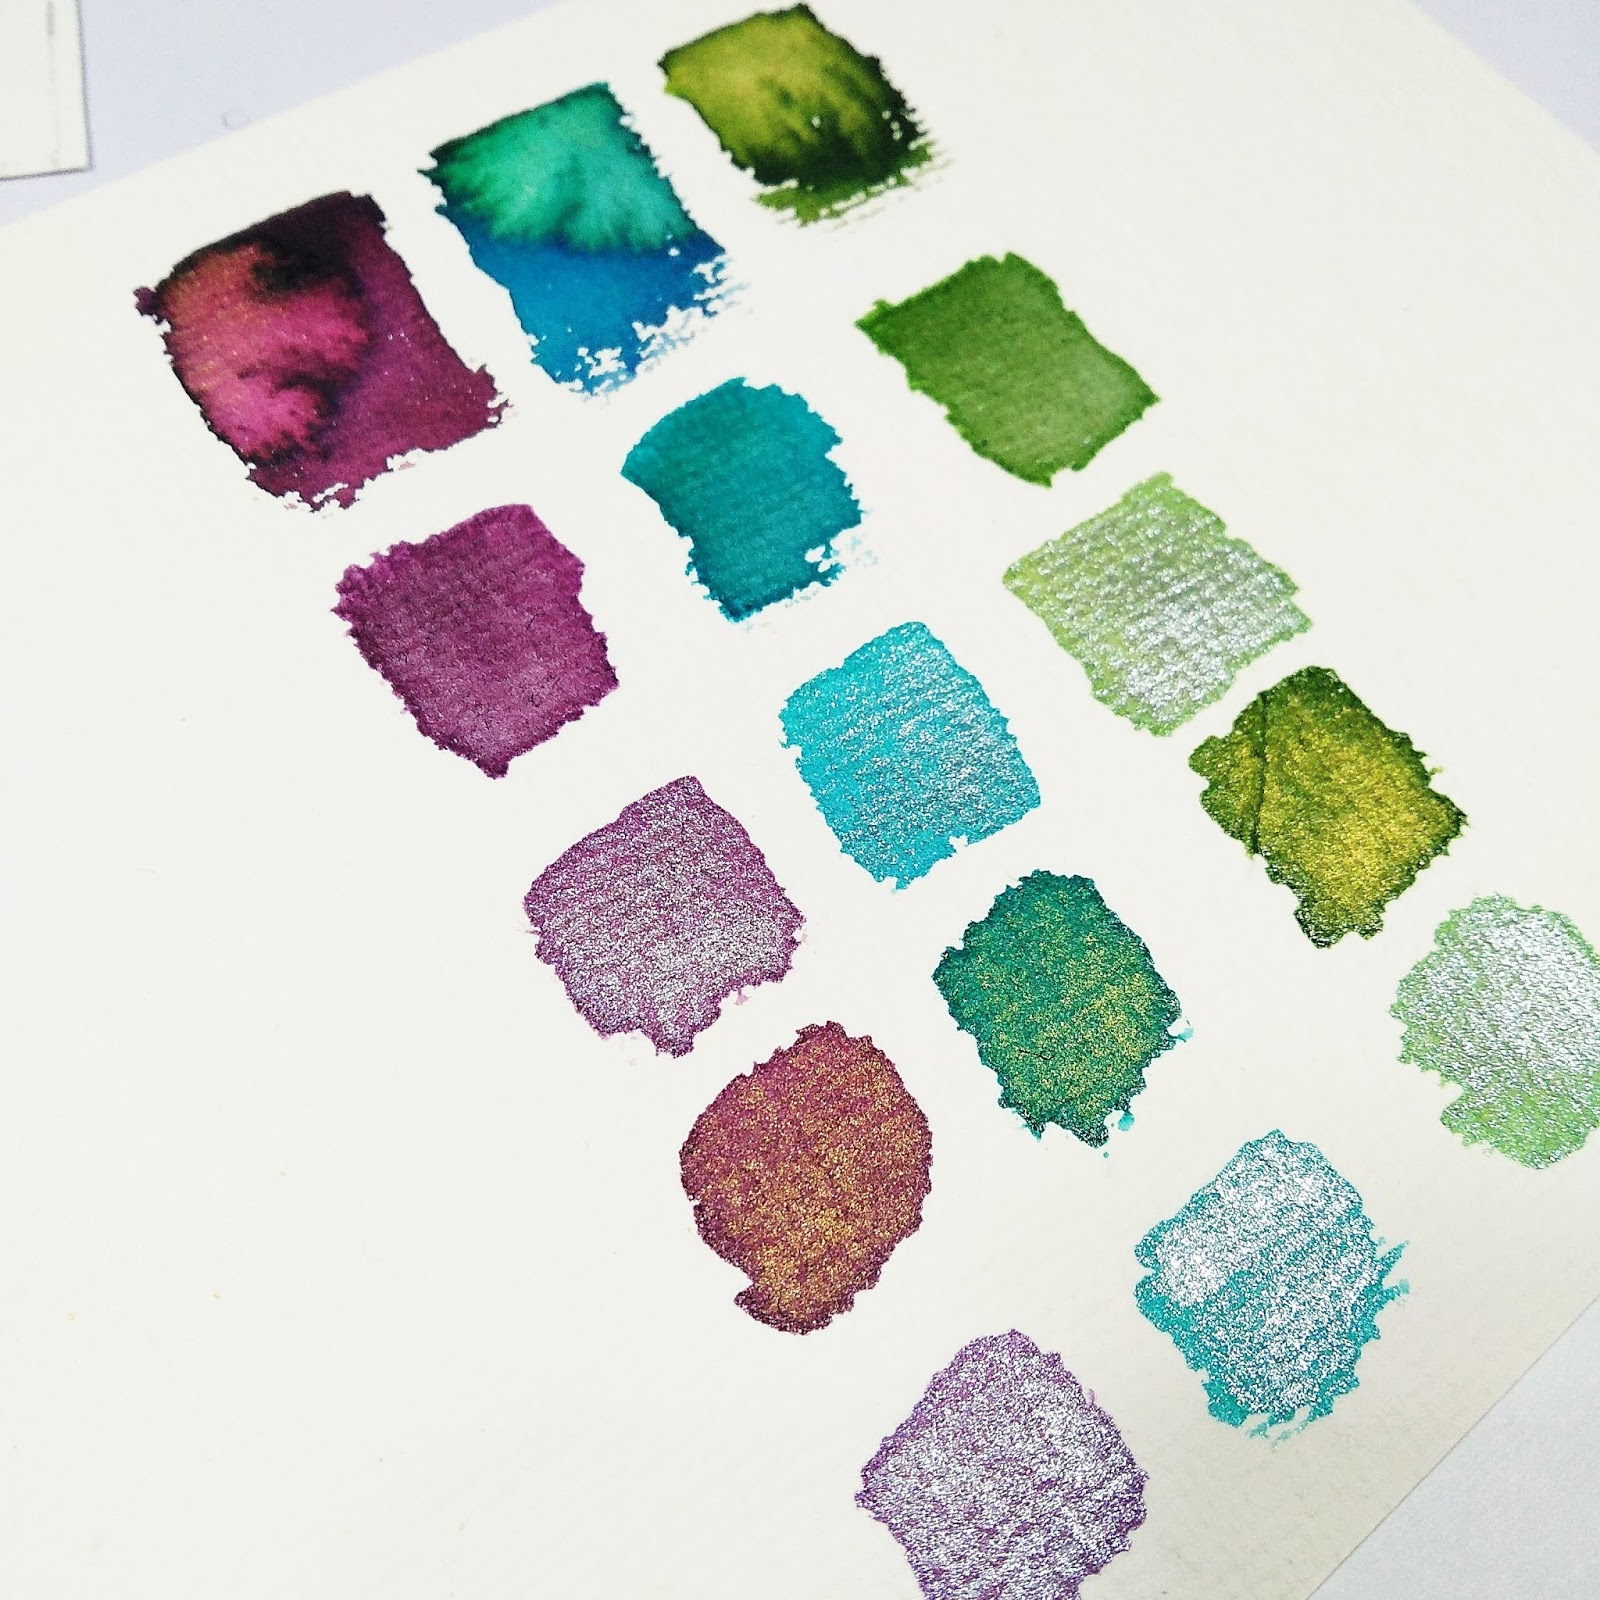 Watercolor painting on alcohol ink papers 3